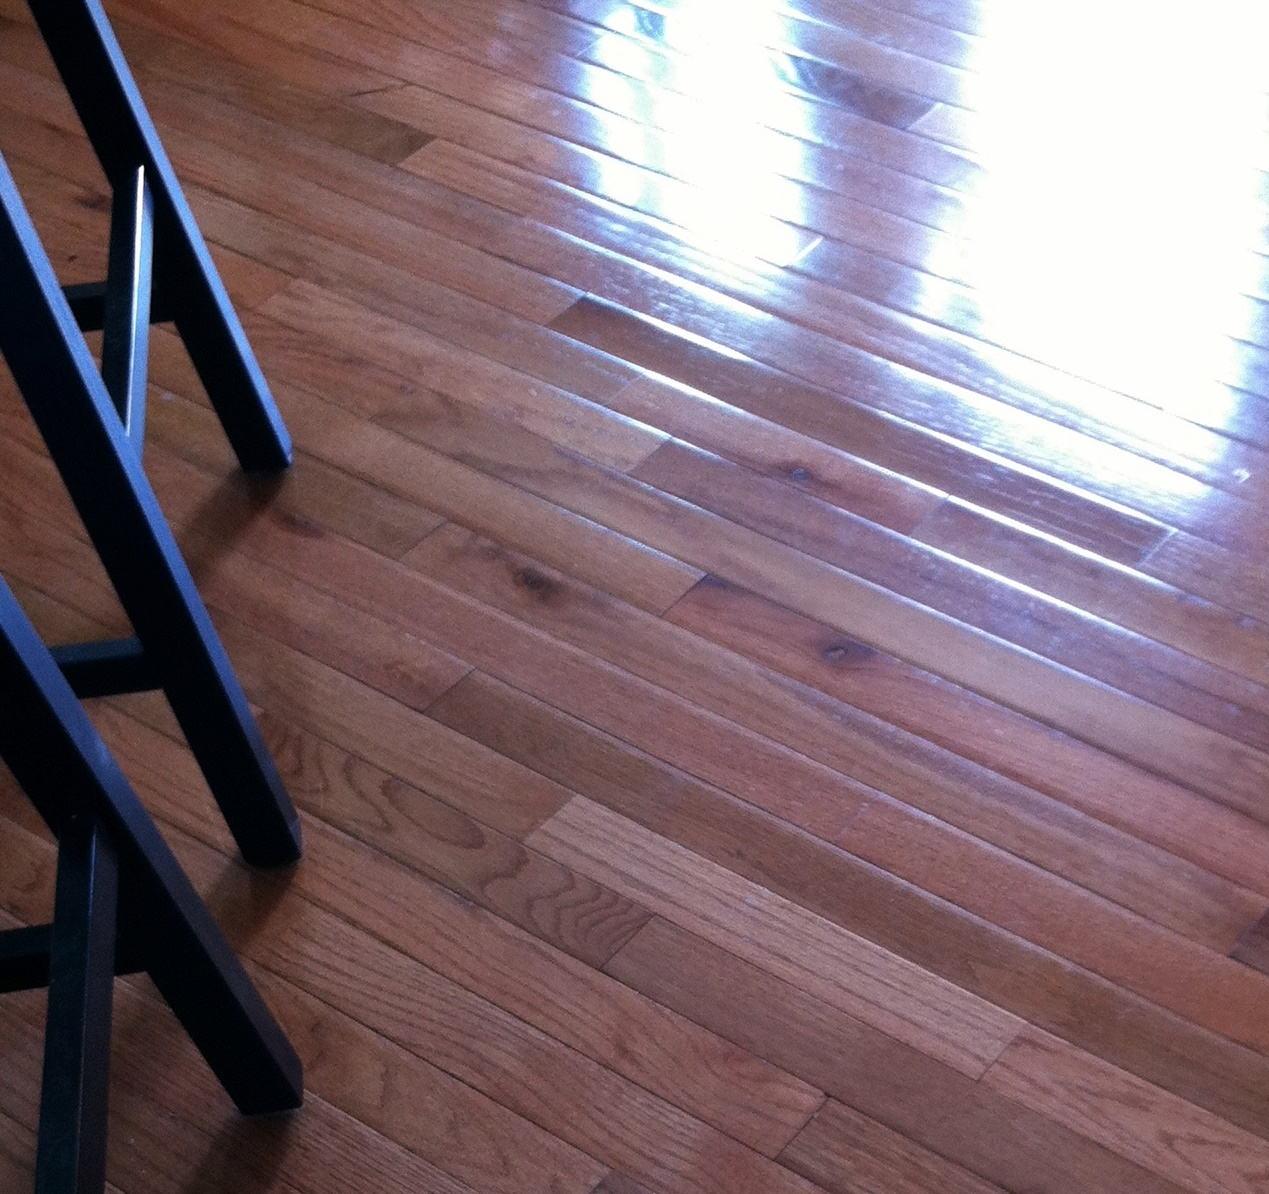 Natural Homemade Living Cleaning Your Wood Floor